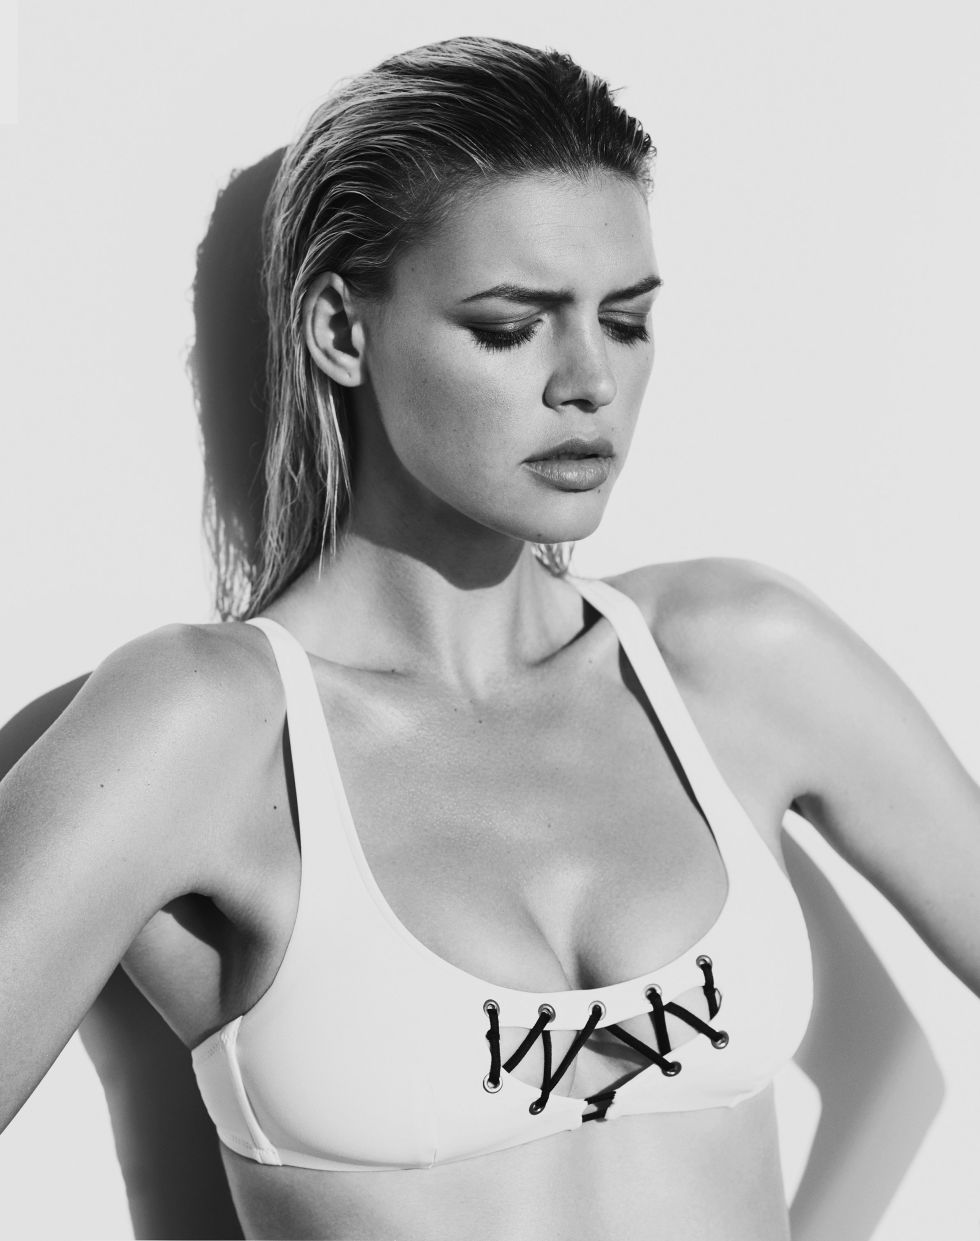 Kelly Rohrbach Sexy Photo...